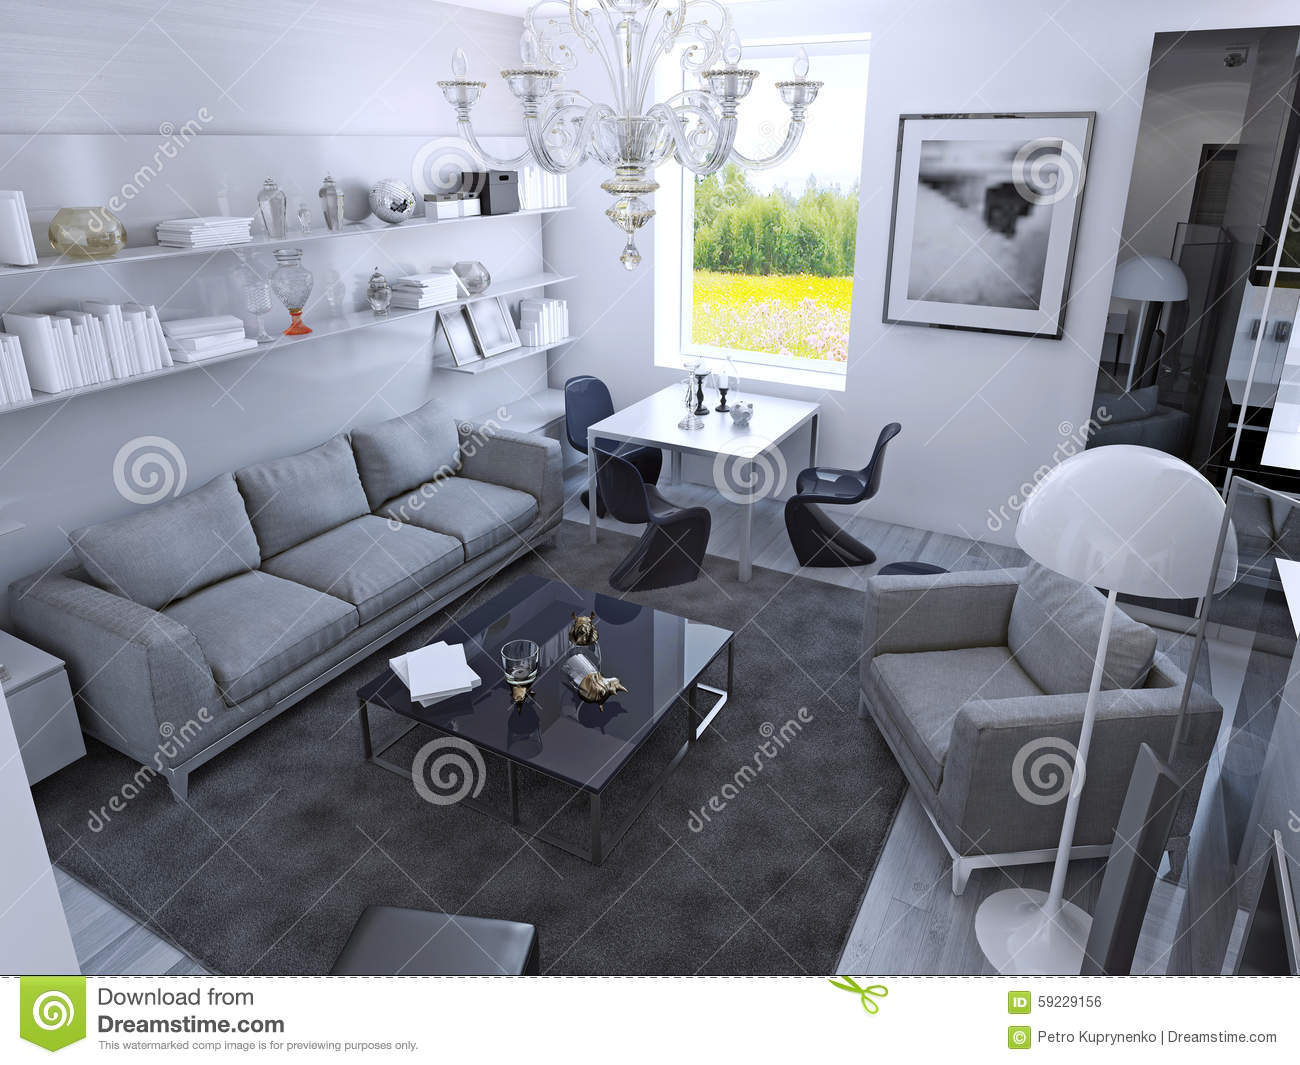 Contemporary living room in daylight room with dining table in gothic style light grey furniture wet asphalt color carpet on laminate flooring